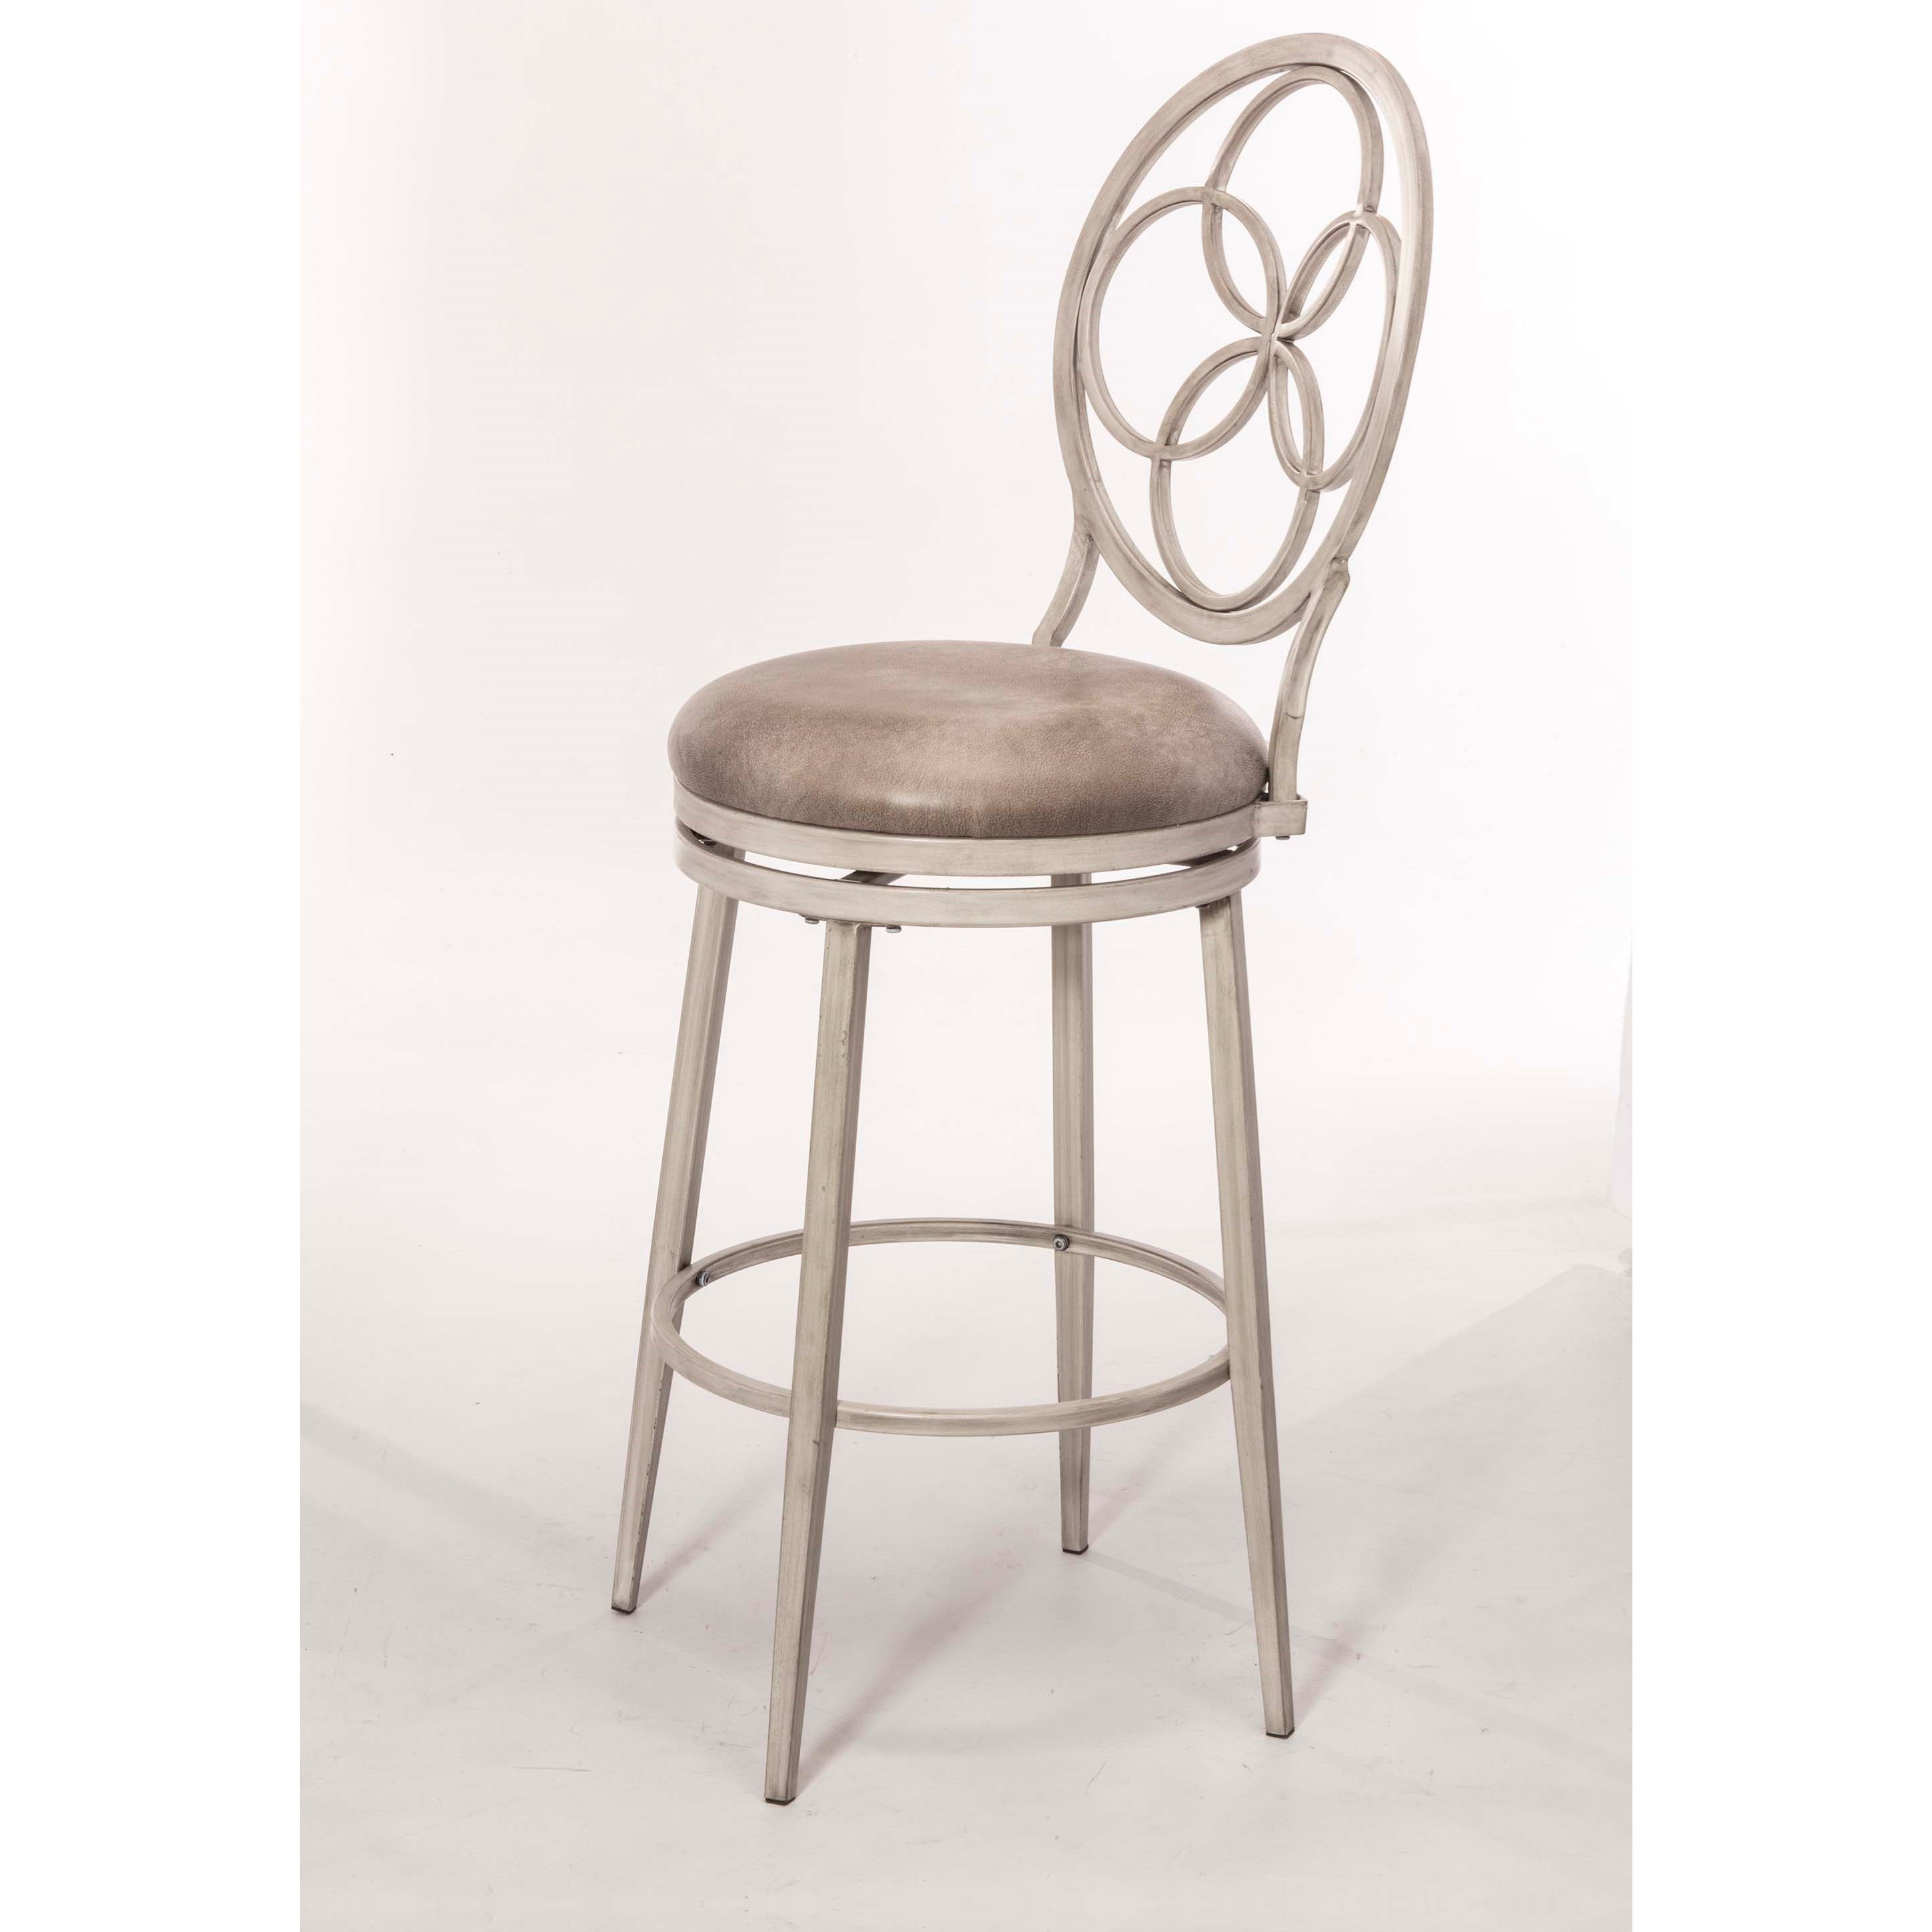 Hillsdale Metal Stools 5991 826 Swivel Counter Stool With